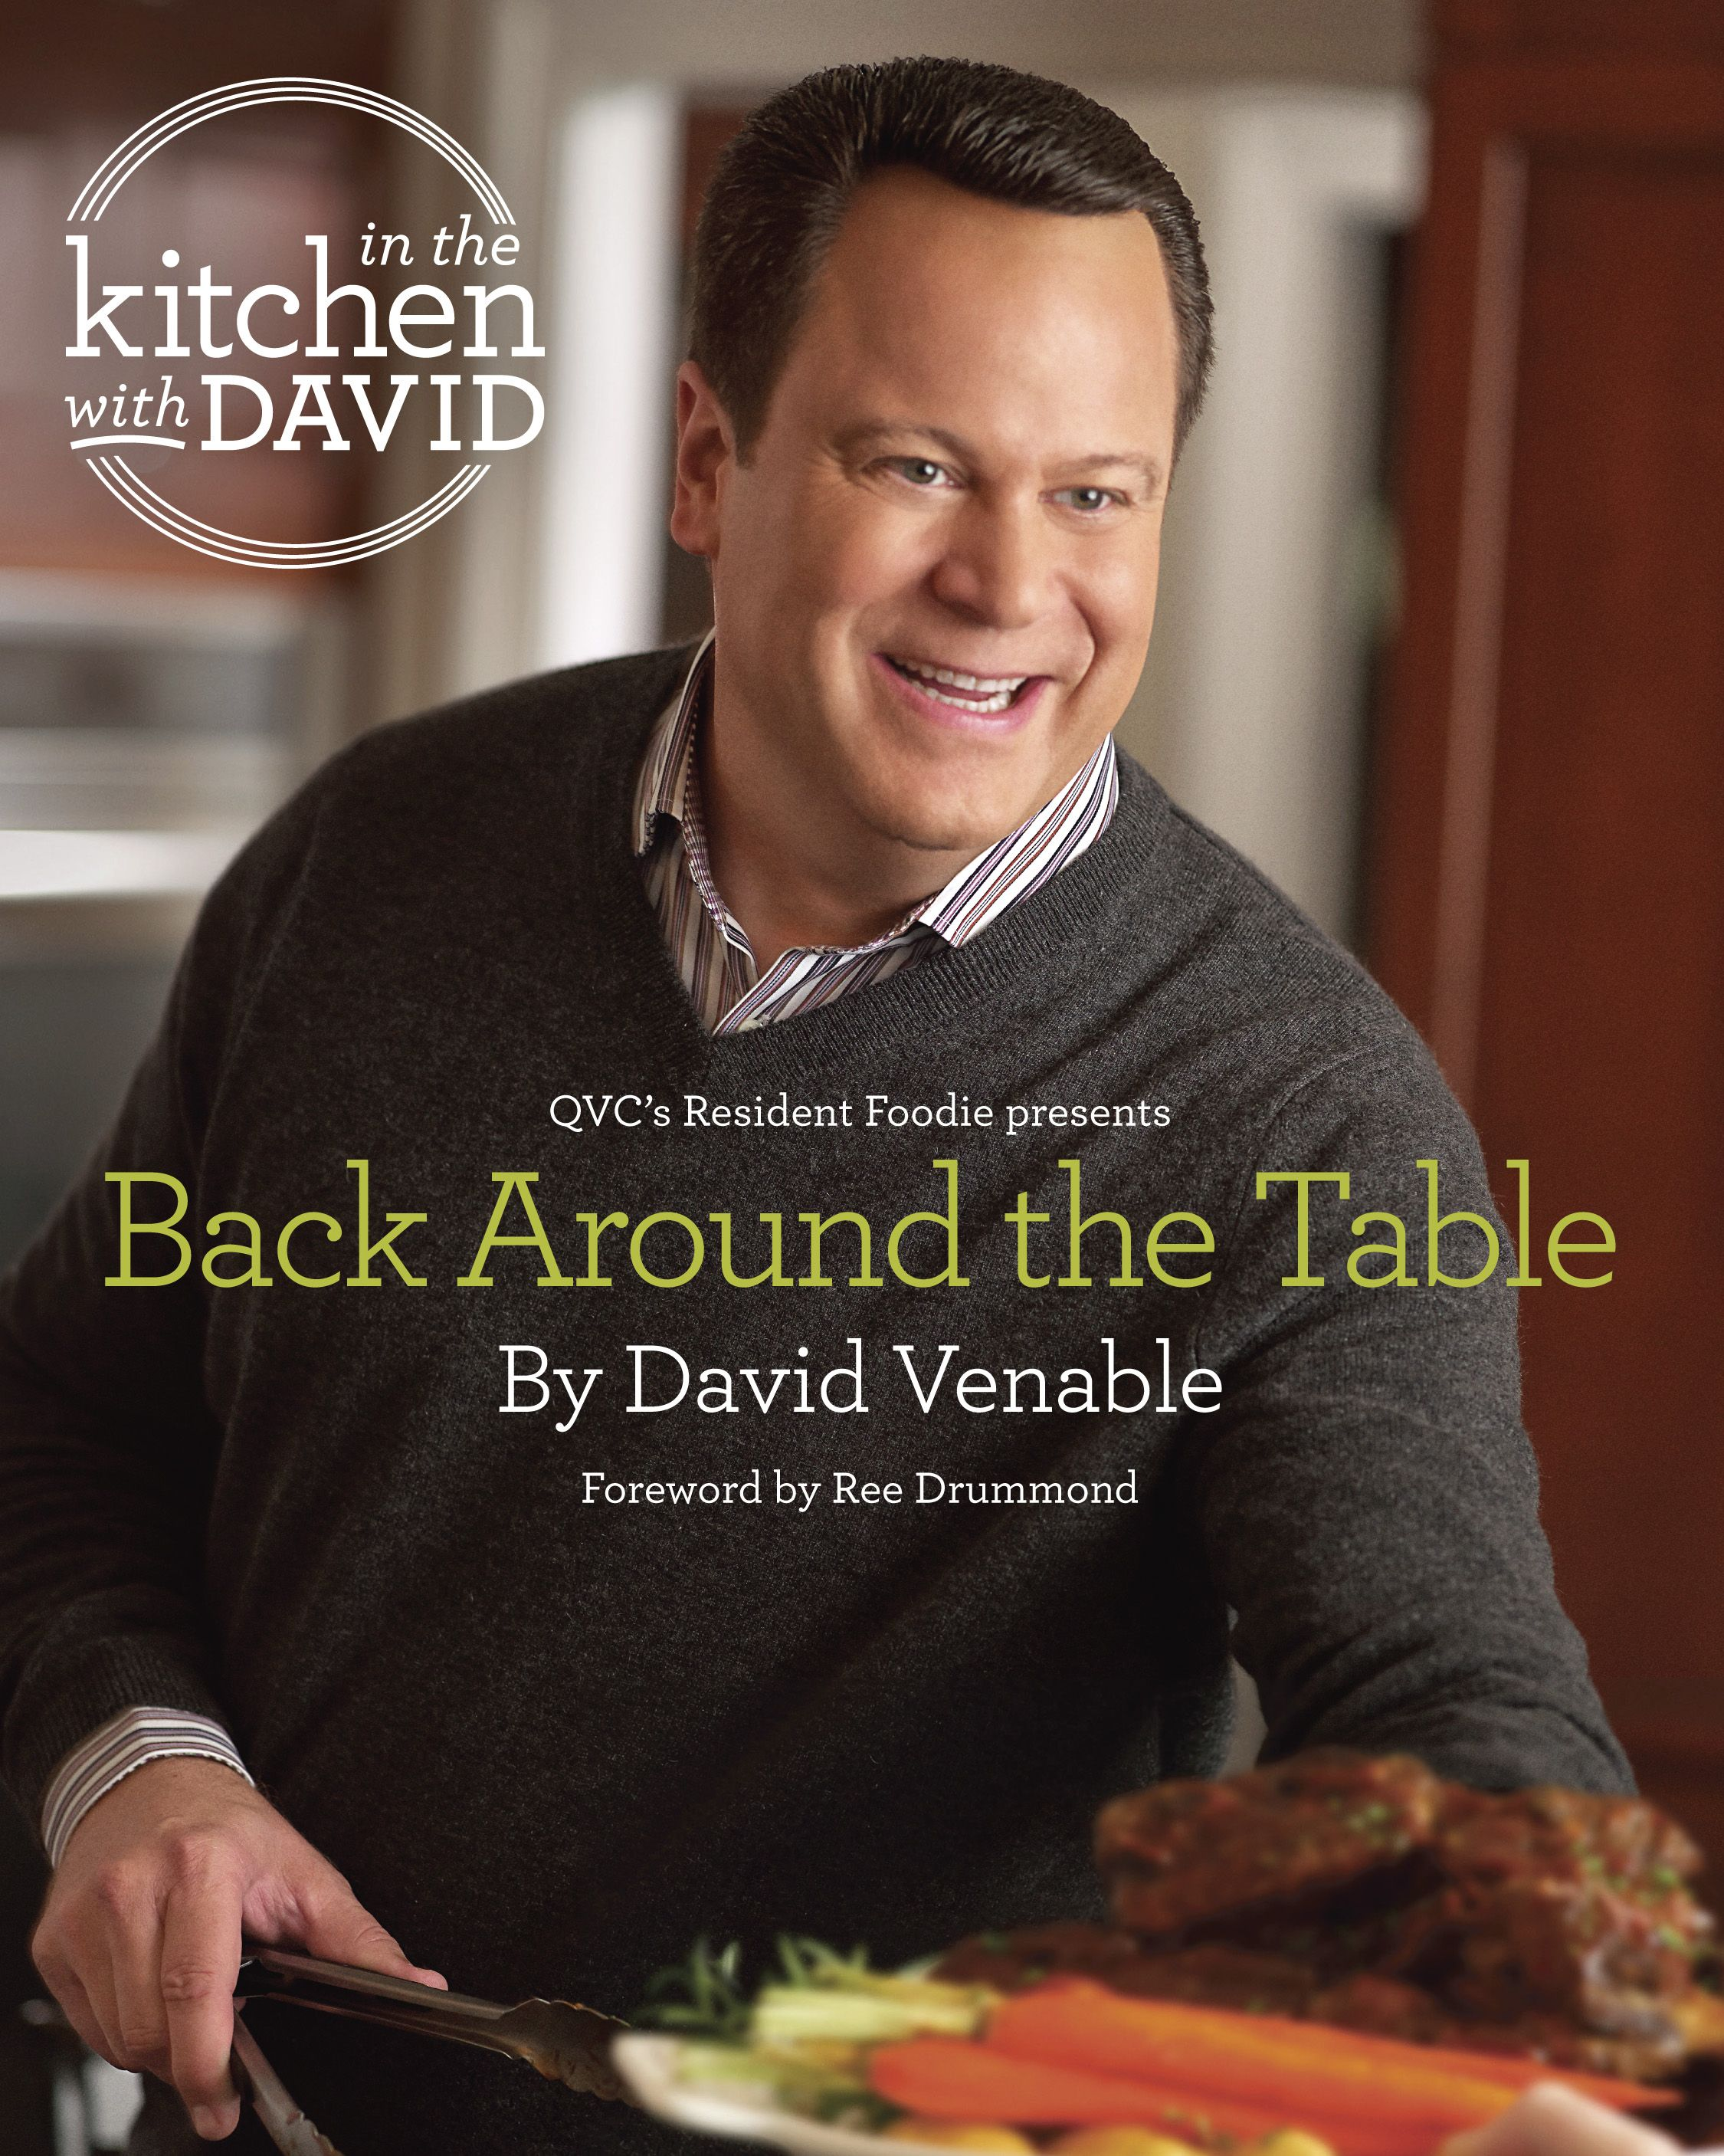 Back Around The Table An In The Kitchen With David Cookbook